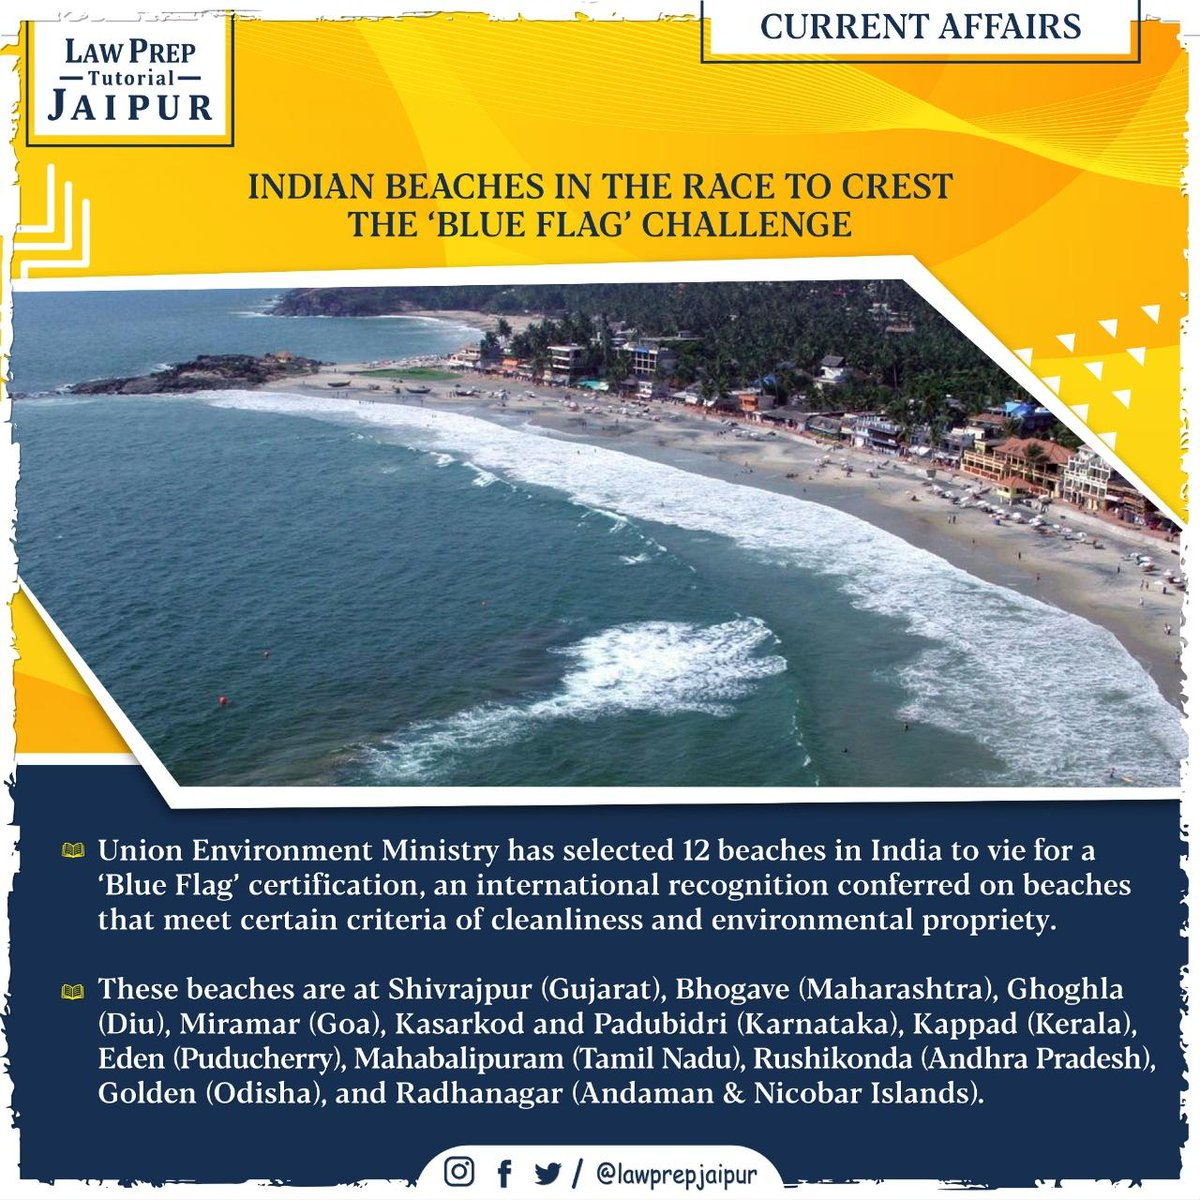 Stay connected for more such Current Affairs.  #Gk #CLATGK #CLAT2020 #CLATQuestions #currentaffairs #LegalGk #BlueFlag #BlueFlagChallenge #IndianBeaches